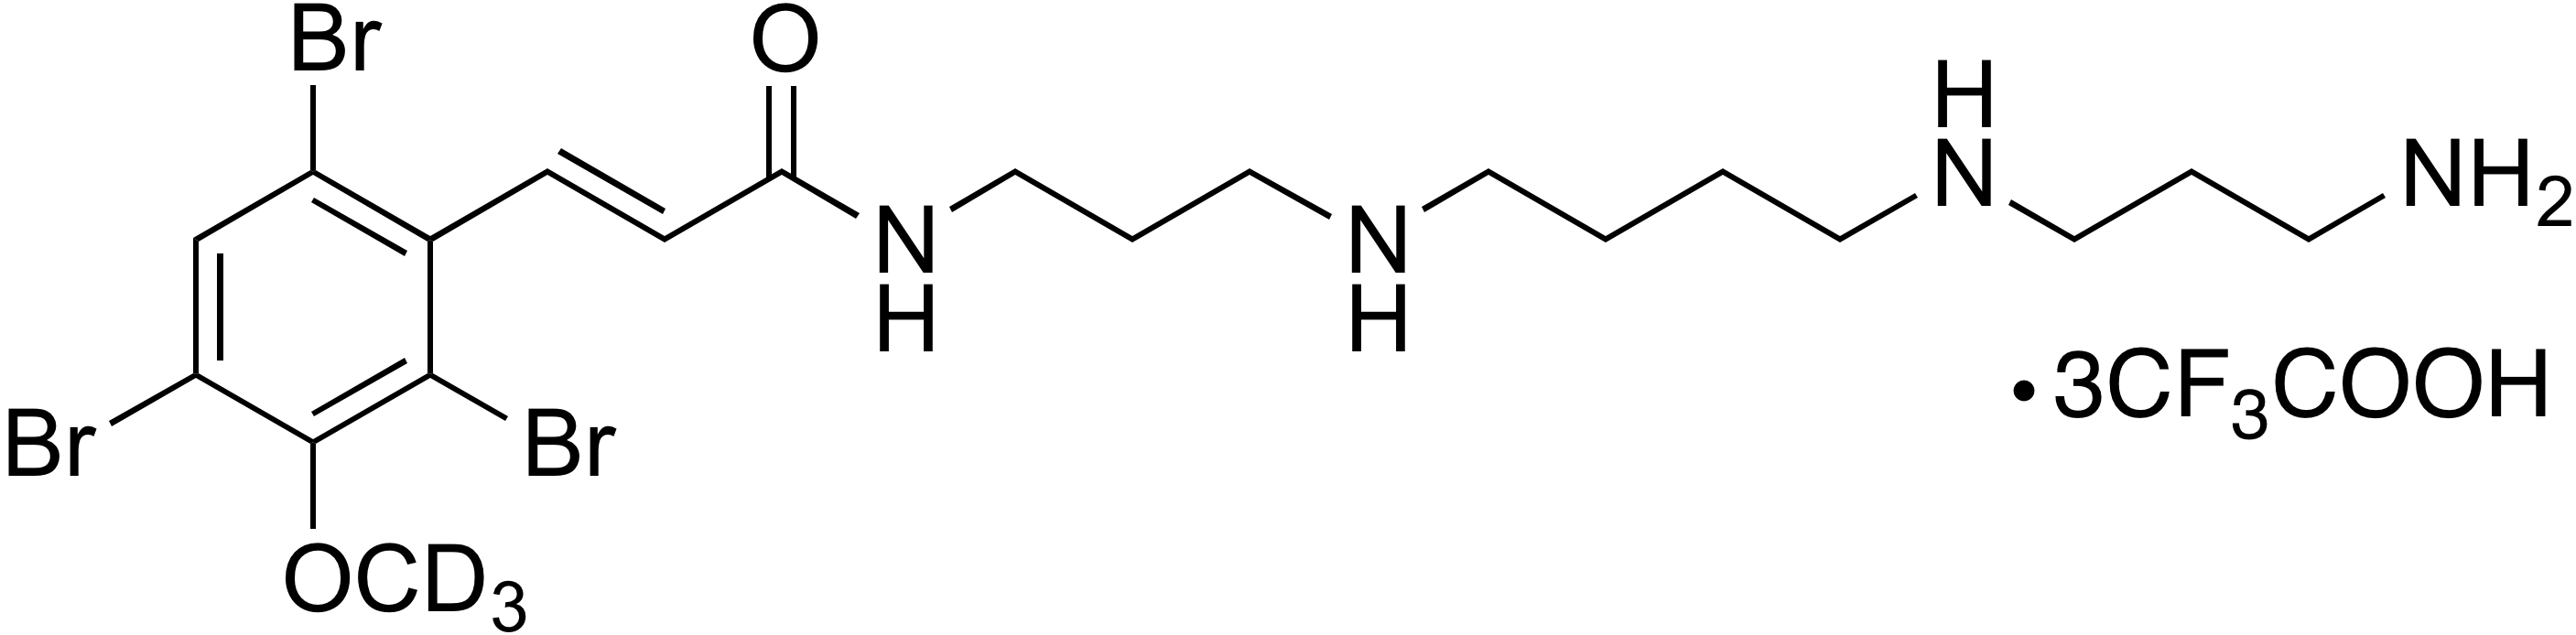 (E)-N-(3-((4-((3-Aminopropyl)amino)butyl)amino)propyl)-3-(2,4,6-tribromo-3-methoxy-d<sub>3</sub>-phenyl)acrylamide trifluoroacetate (1:3)